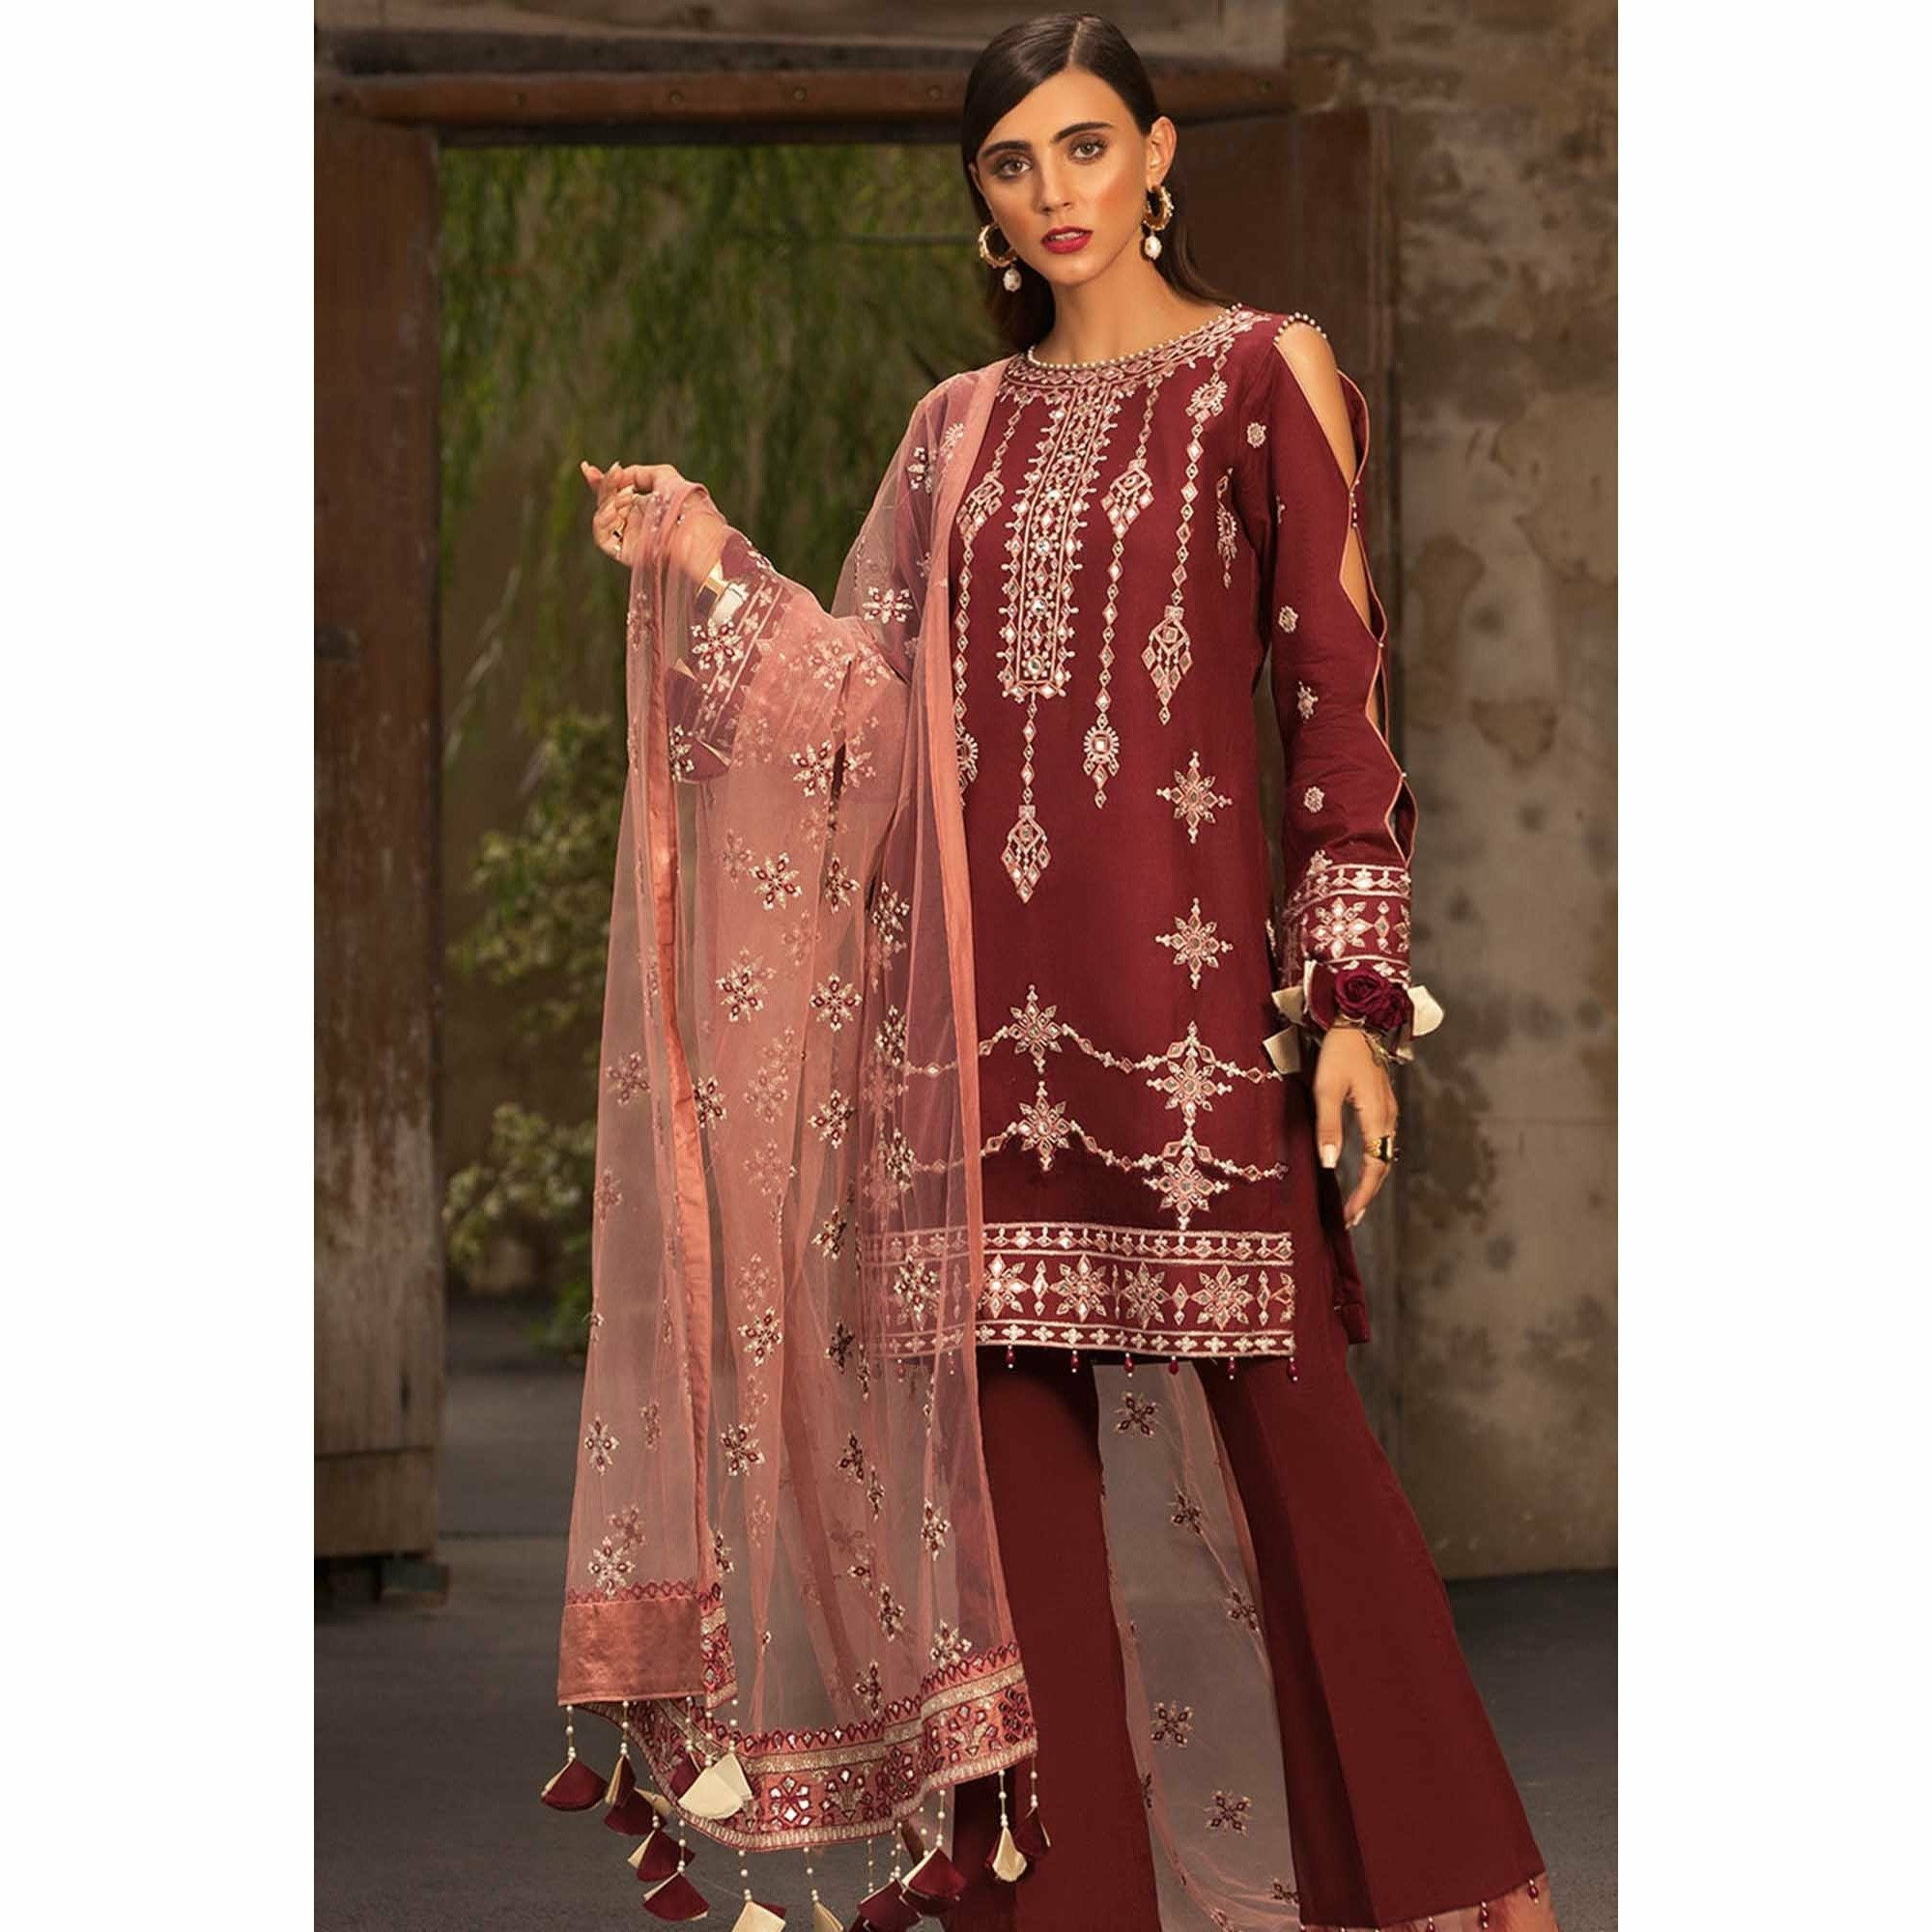 Noor by Saadia Asad | Luxury Lawn 19 - 09-A